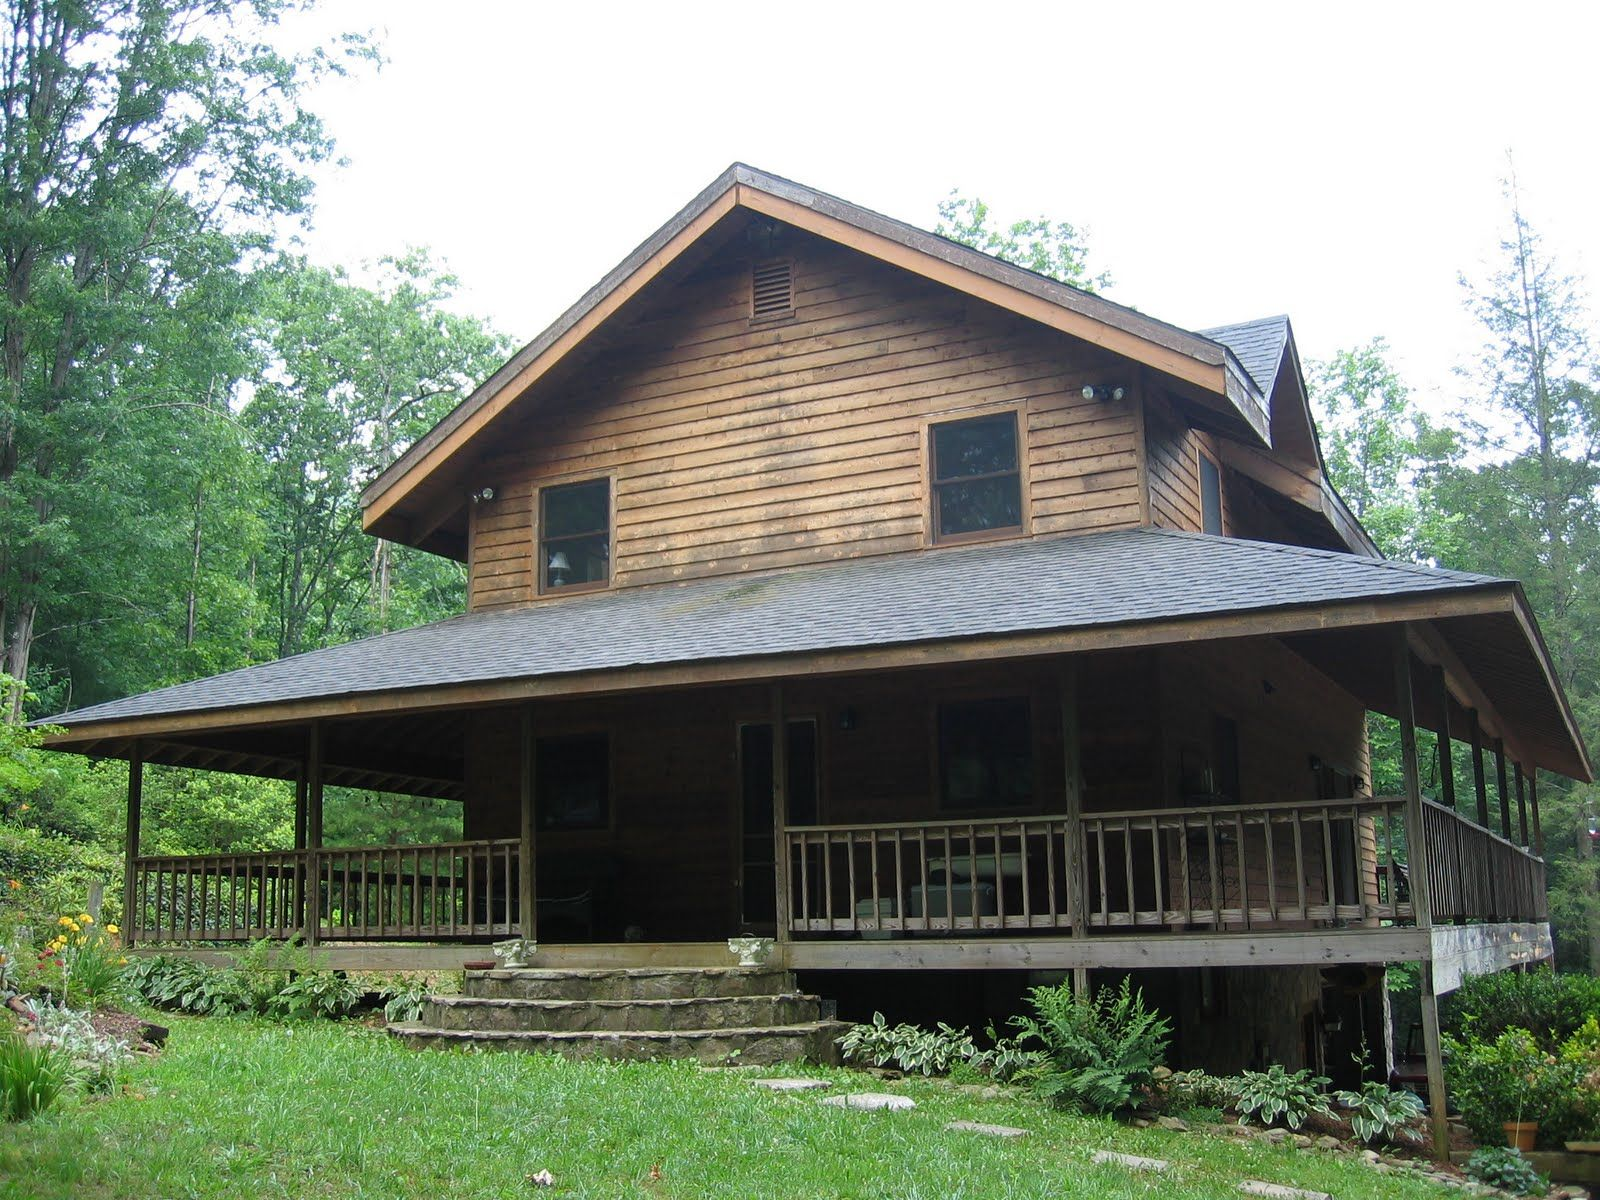 Tate City Ga Cabin For Sale In Tate City Georgia Log Cabin Plans Log Cabin House Plans Log Cabin Rustic